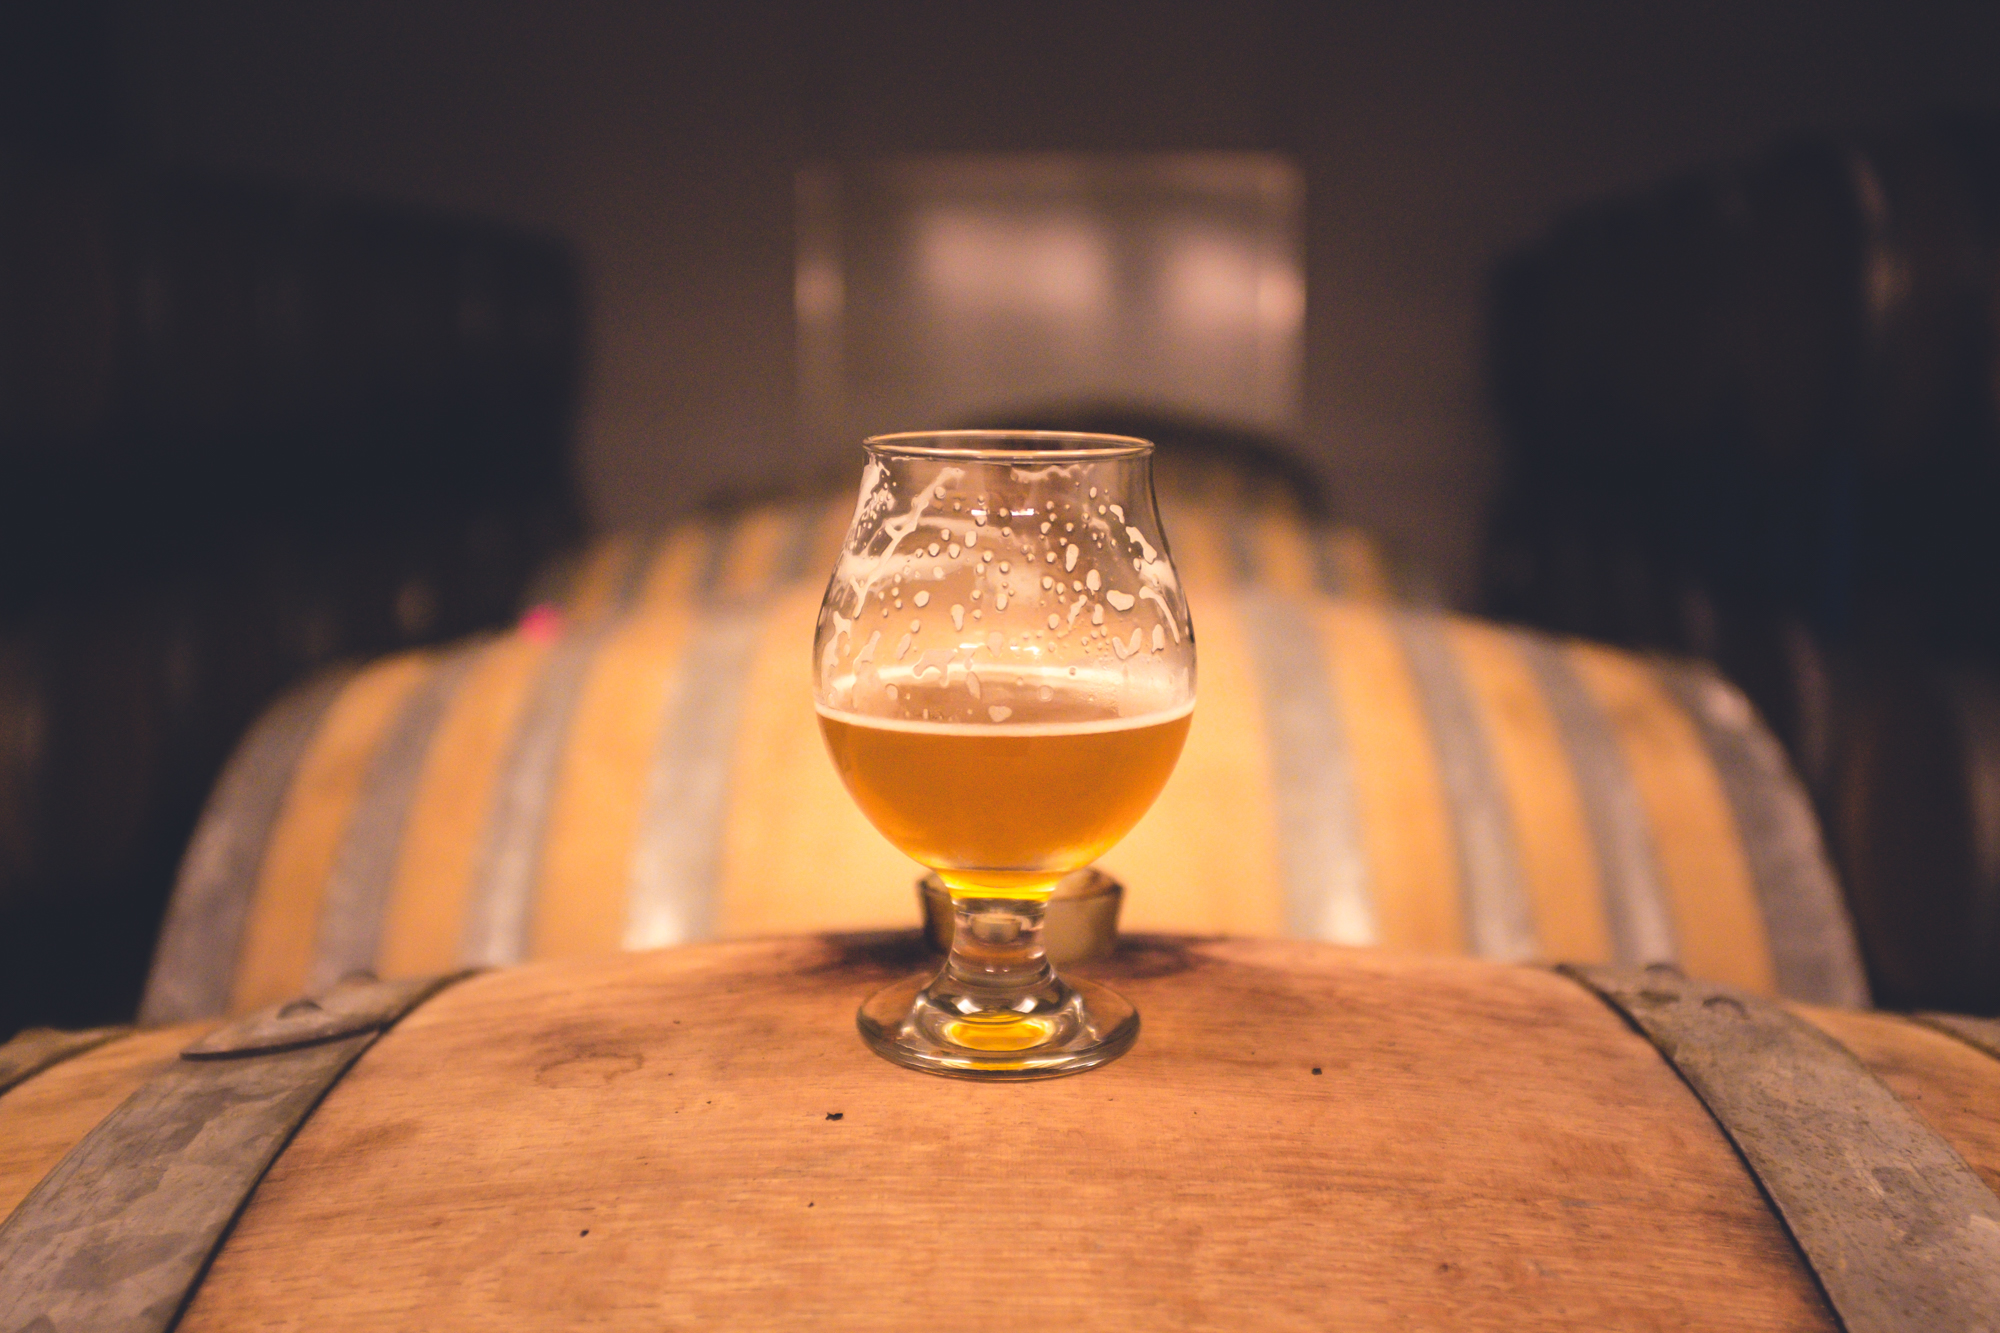 Xanthohumol, a substance found in hops used to brew beer, has a wide range of health benefits, according to a new study.